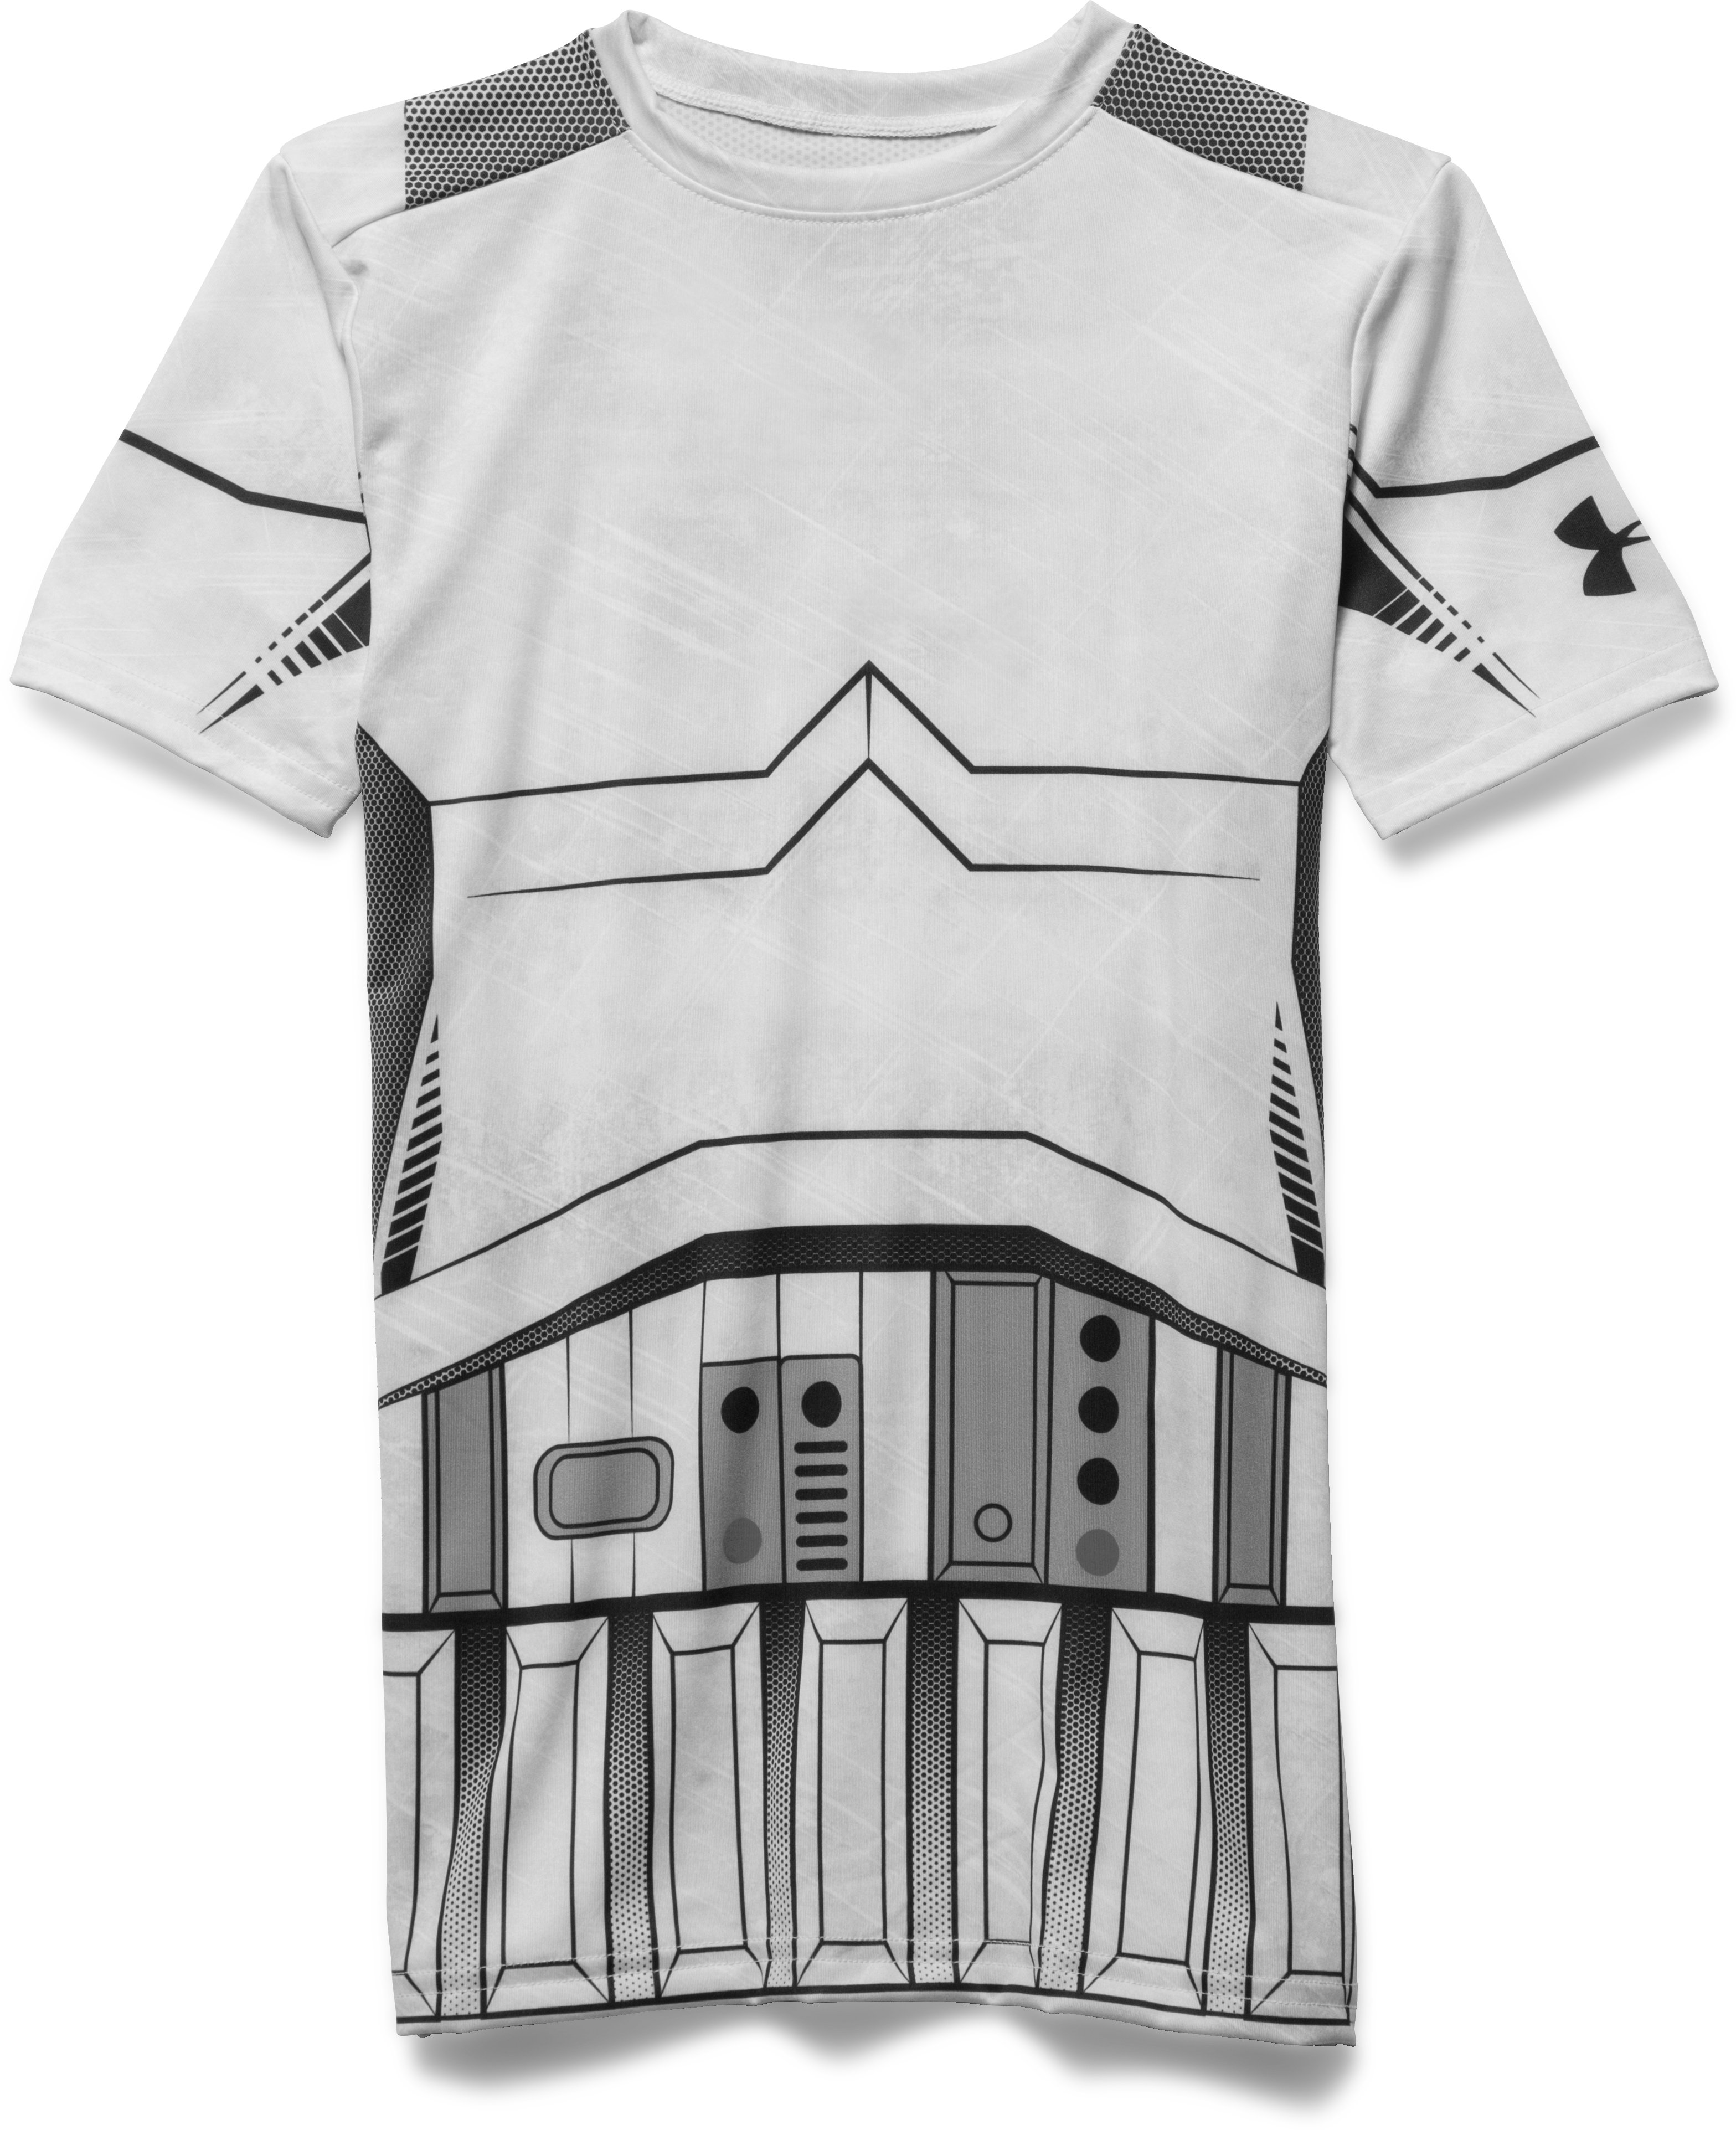 Boys' Star Wars Storm Trooper UA Compression Shirt, White, zoomed image